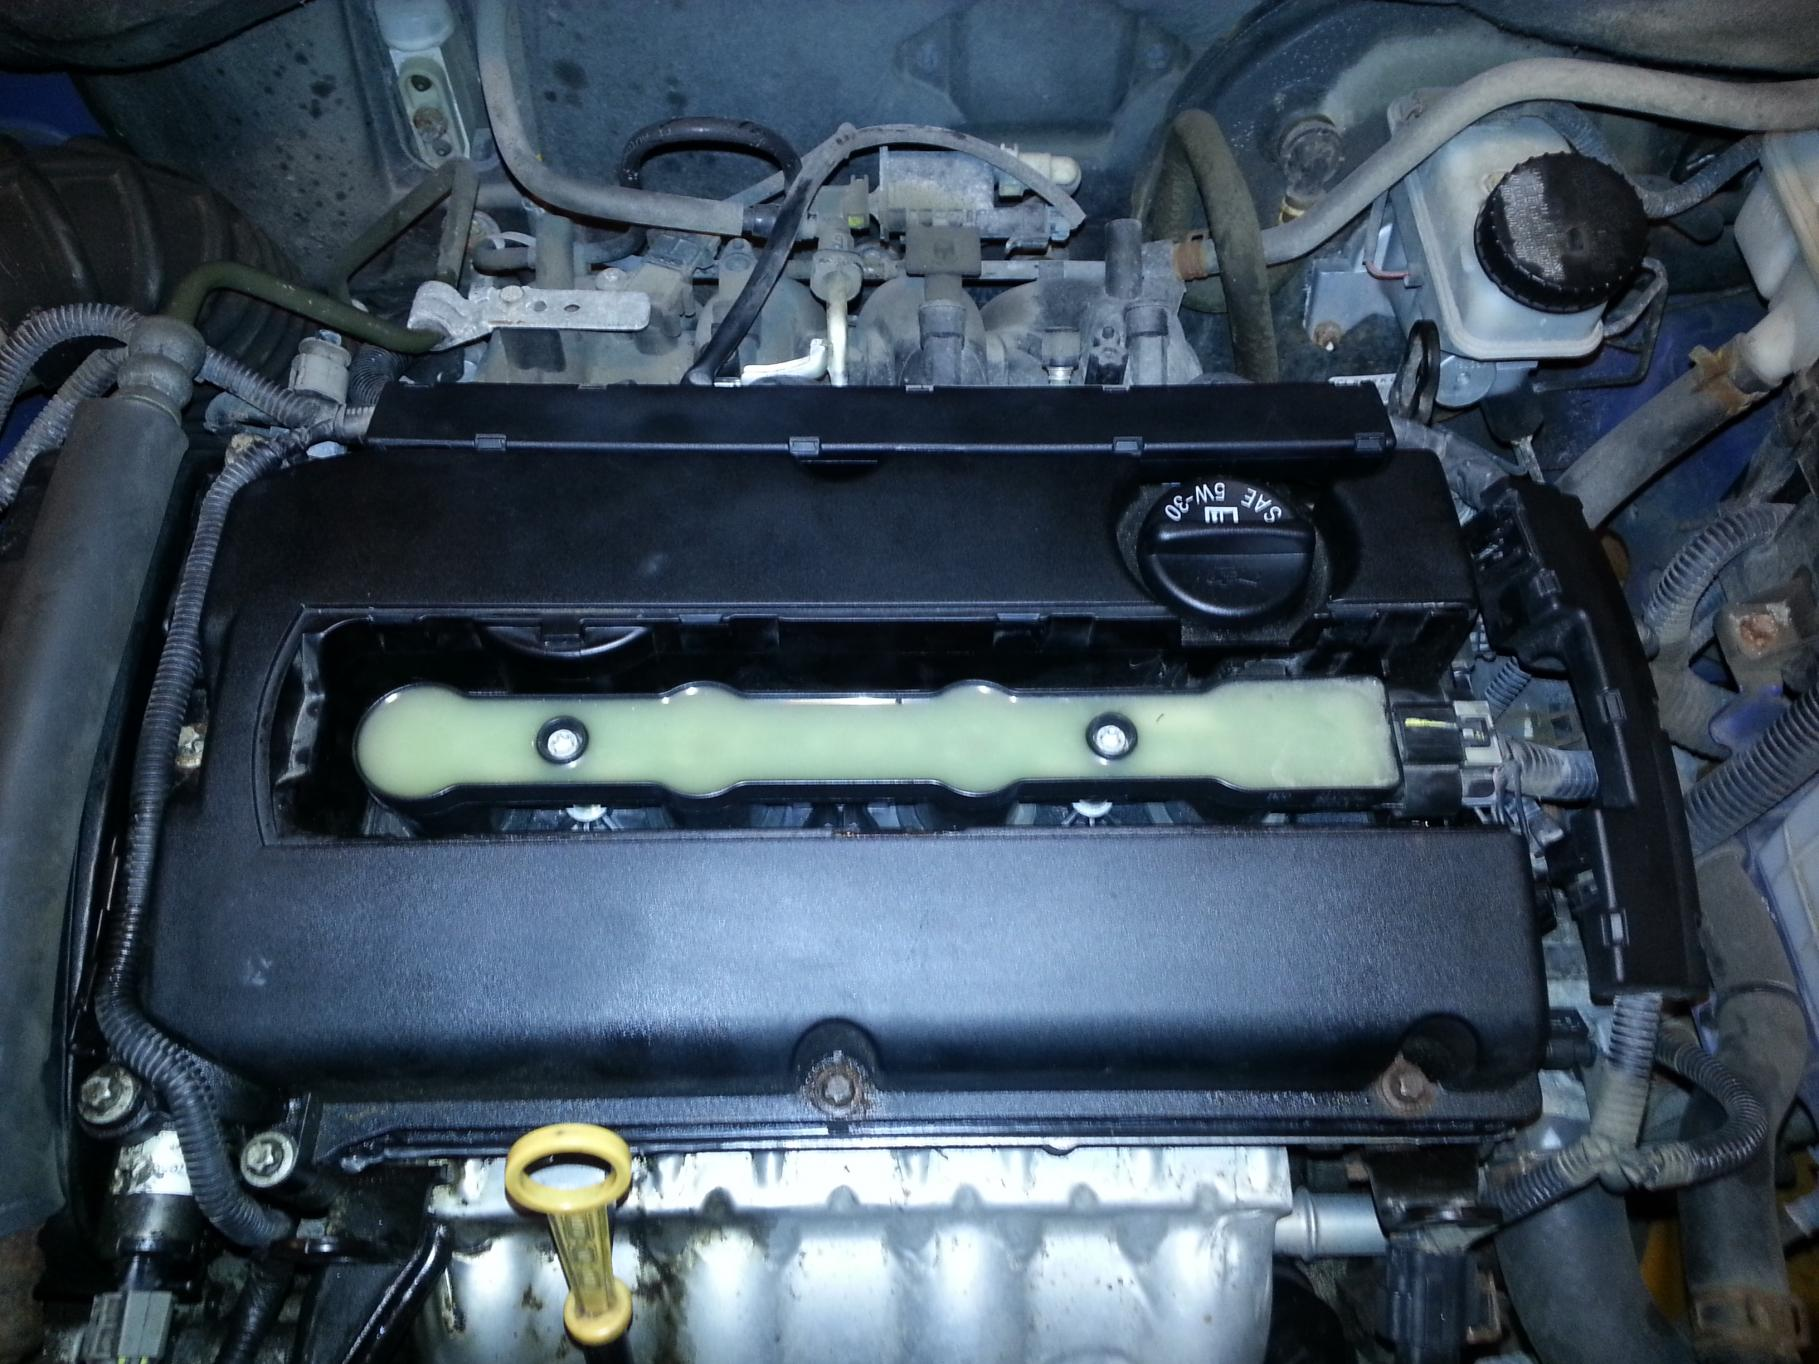 2008 Chrysler 300 Egr Valve Location also 2008 Chevy Aveo Spark Plug Wire Diagram in addition 2006 Hyundai Accent Radio Wiring Diagram besides 2012 Chevy 2 4 Ecotec Engine Diagram furthermore Dodge Neon Pcv Valve Location. on spark plugs 2006 chevy aveo engine diagram